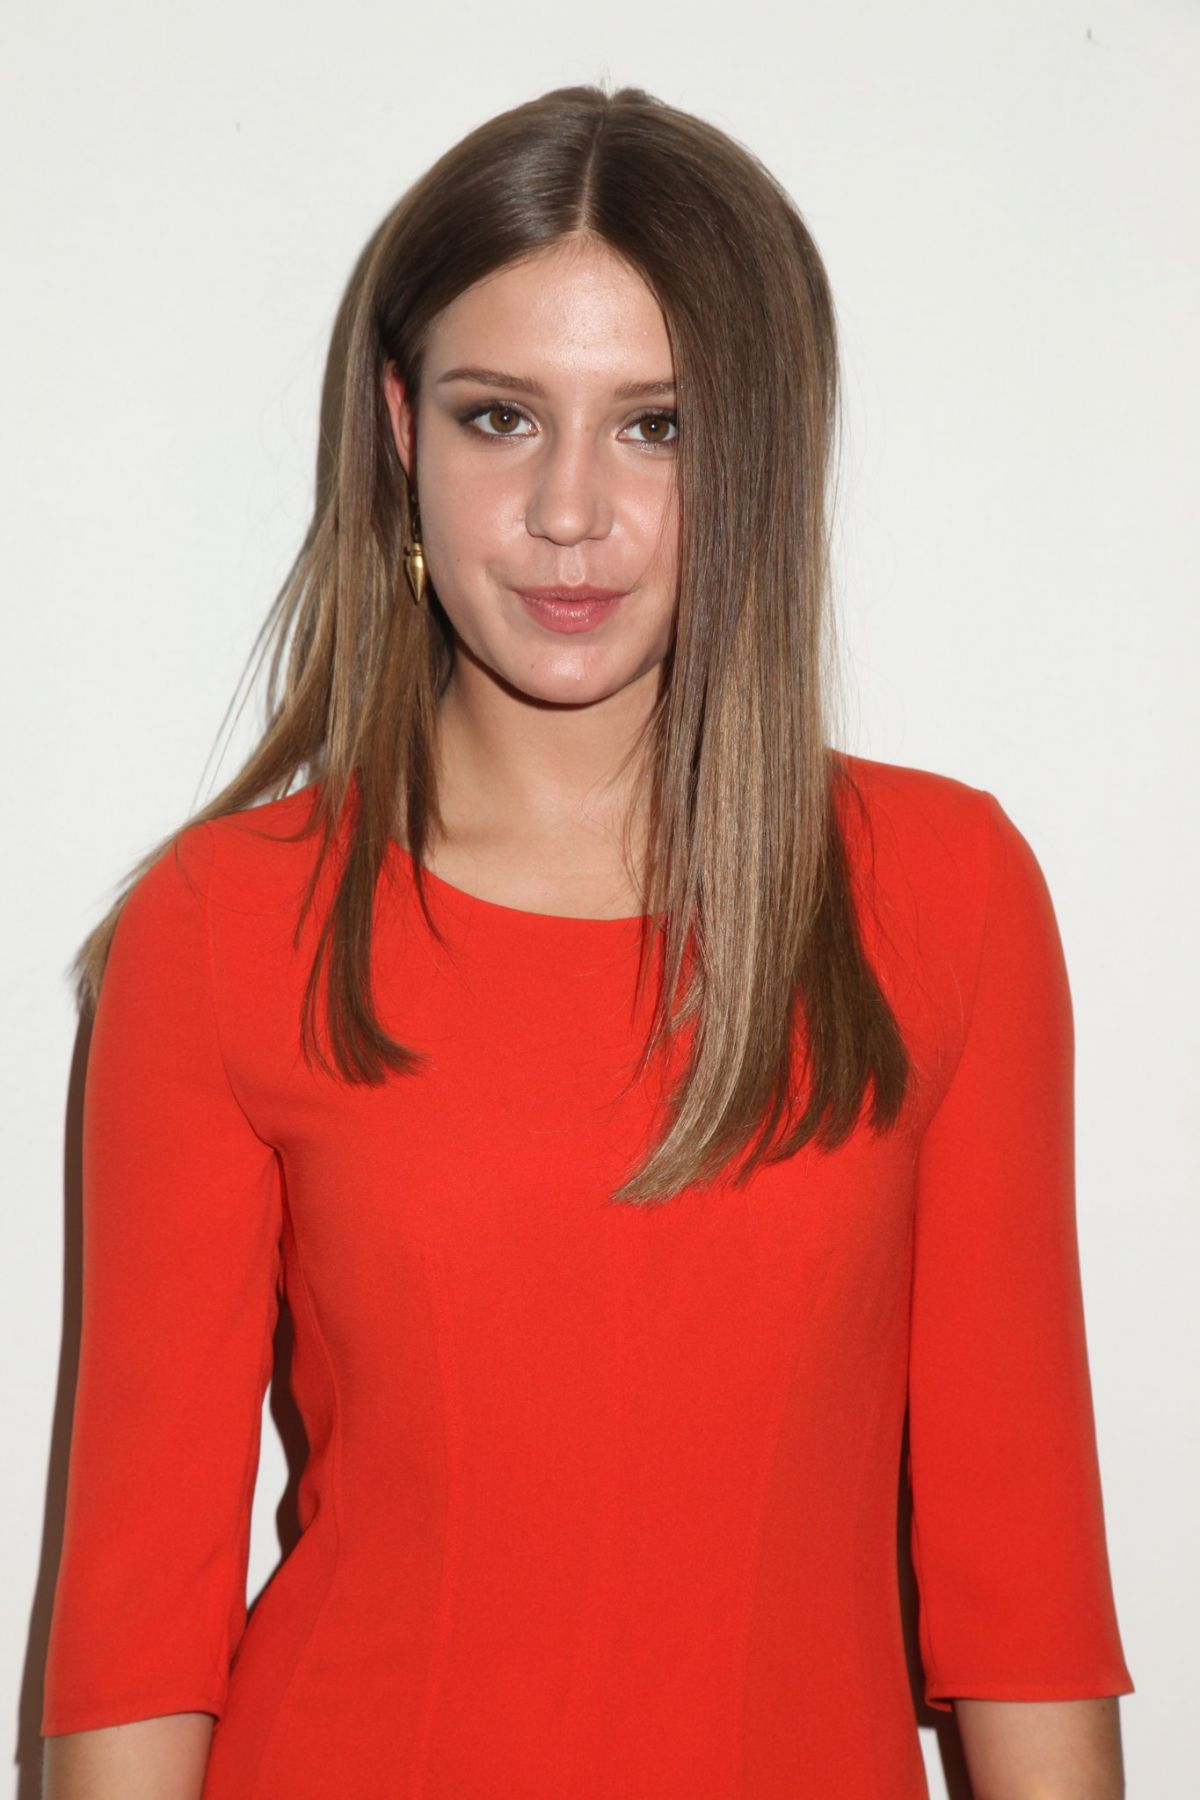 ADELE EXARCHOPOULOS at New York Fashion Week